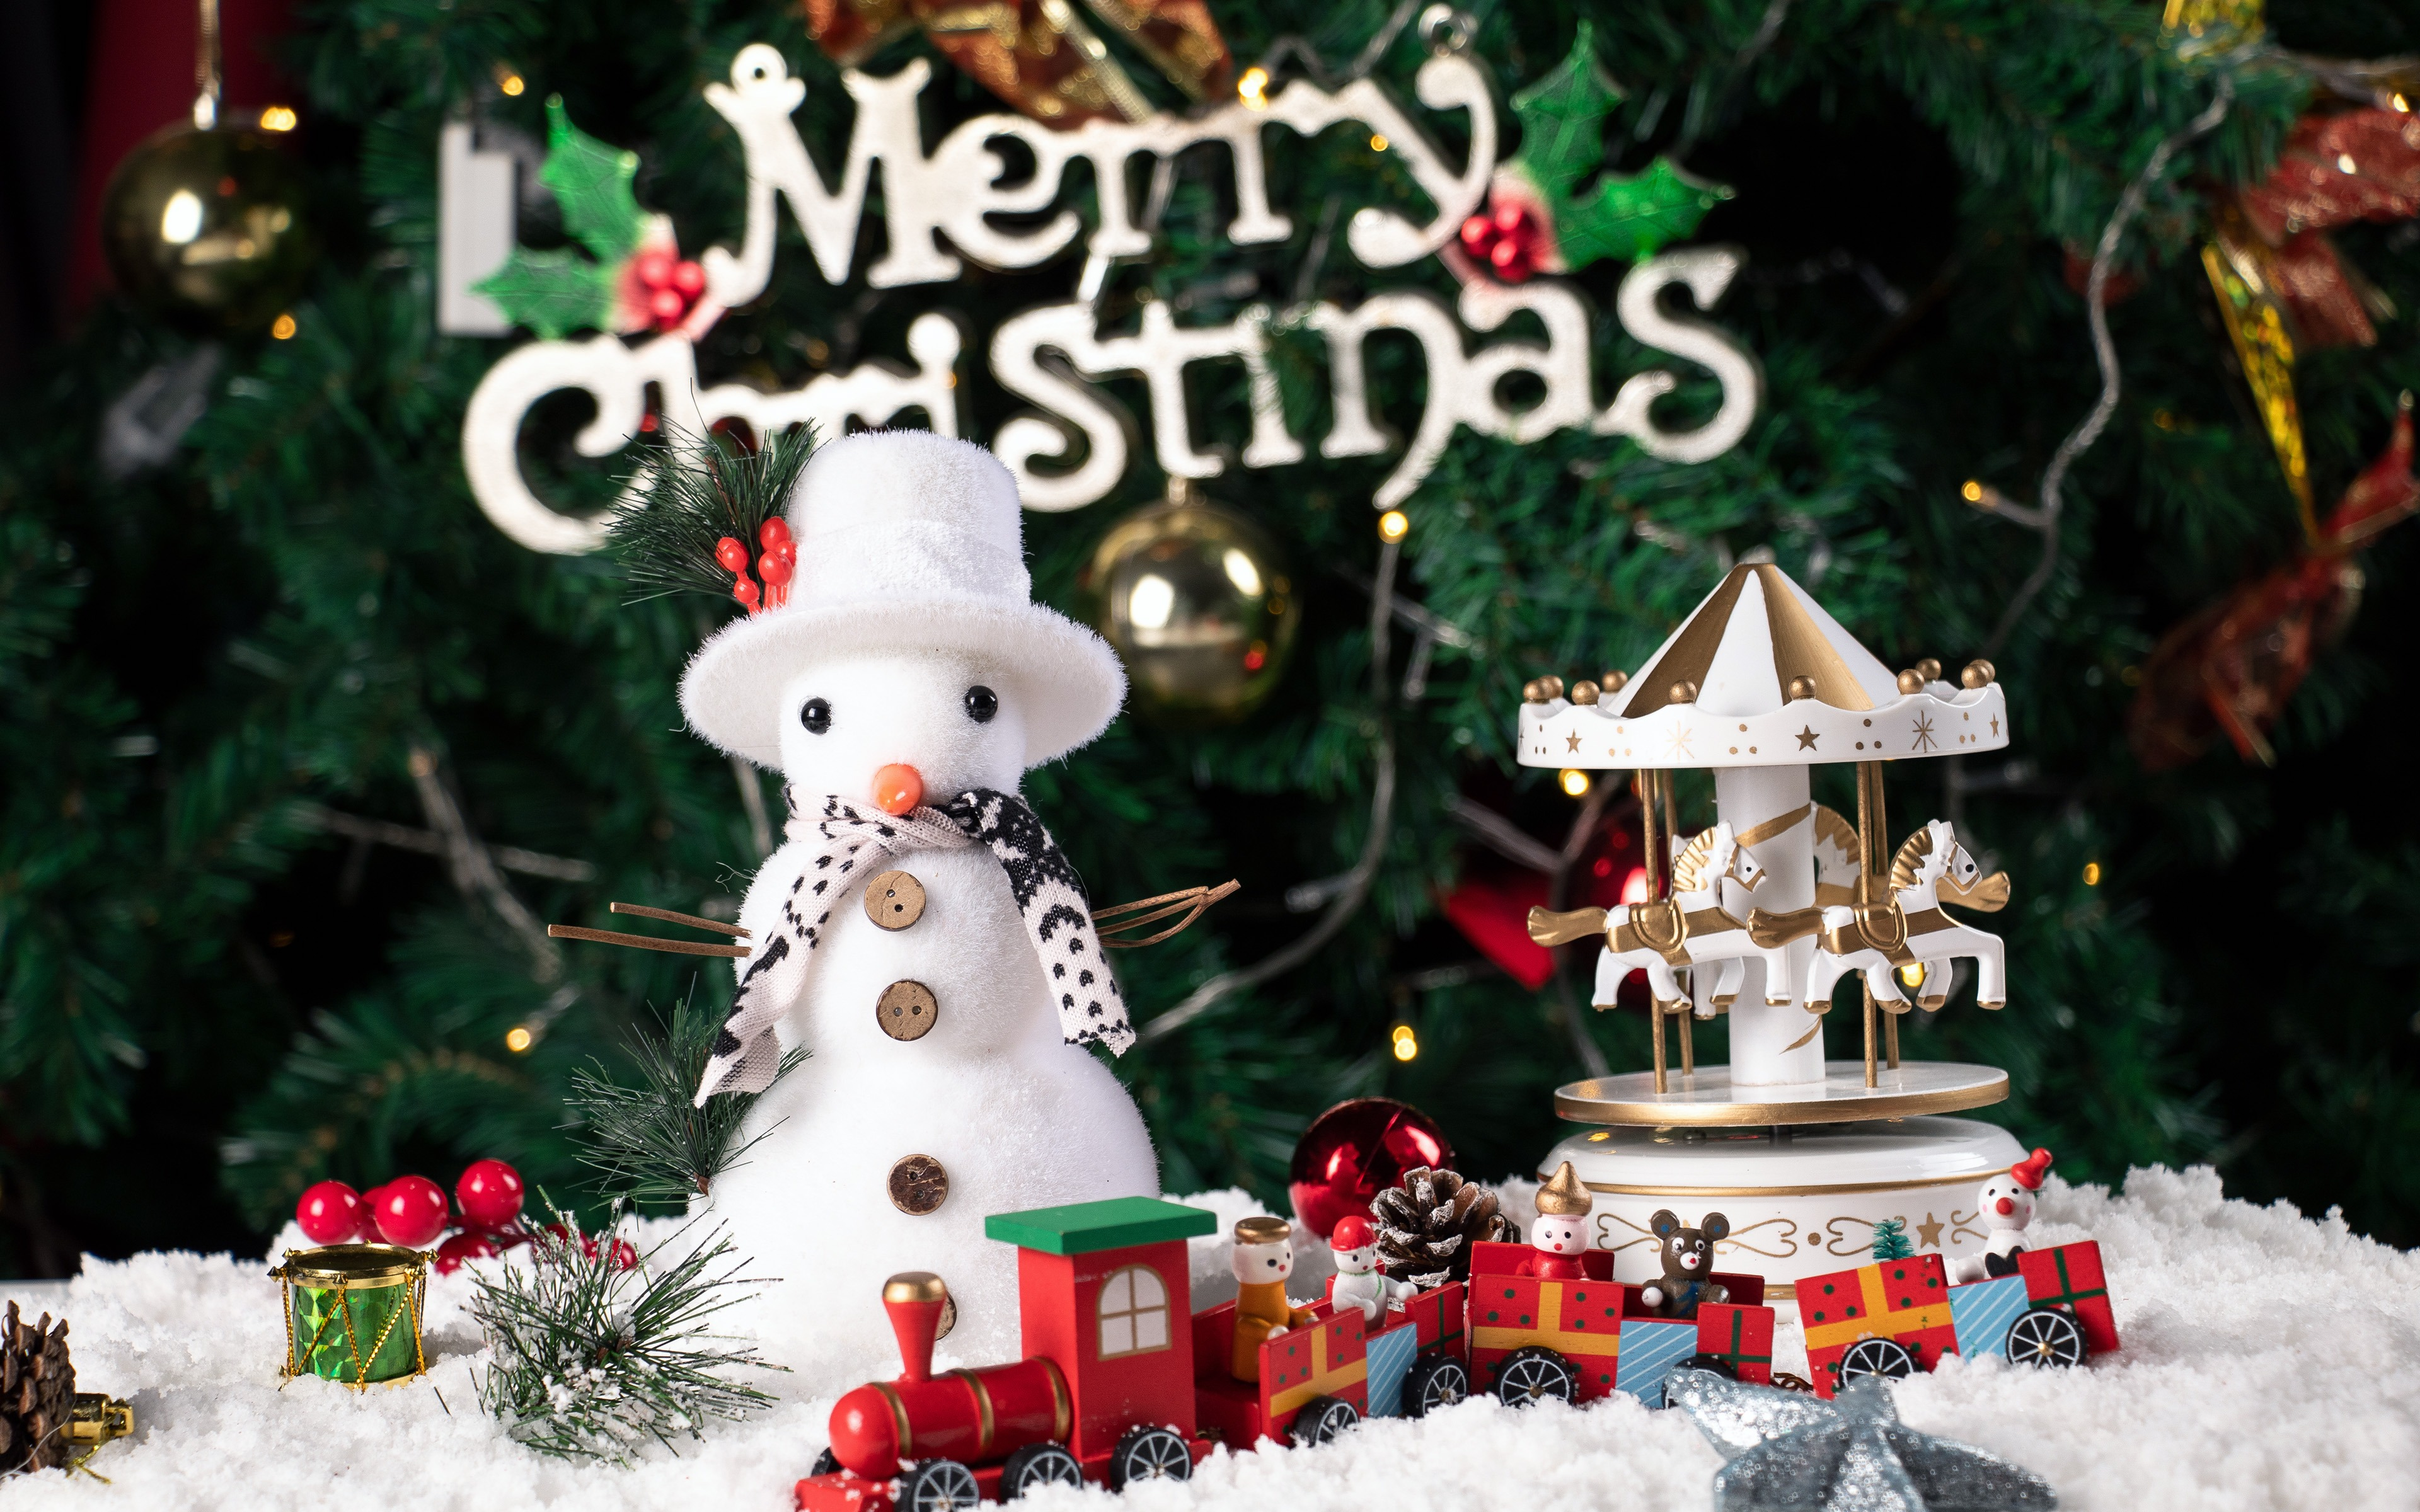 Merry Christmas Festive Season High Quality Wallpaper Resolution